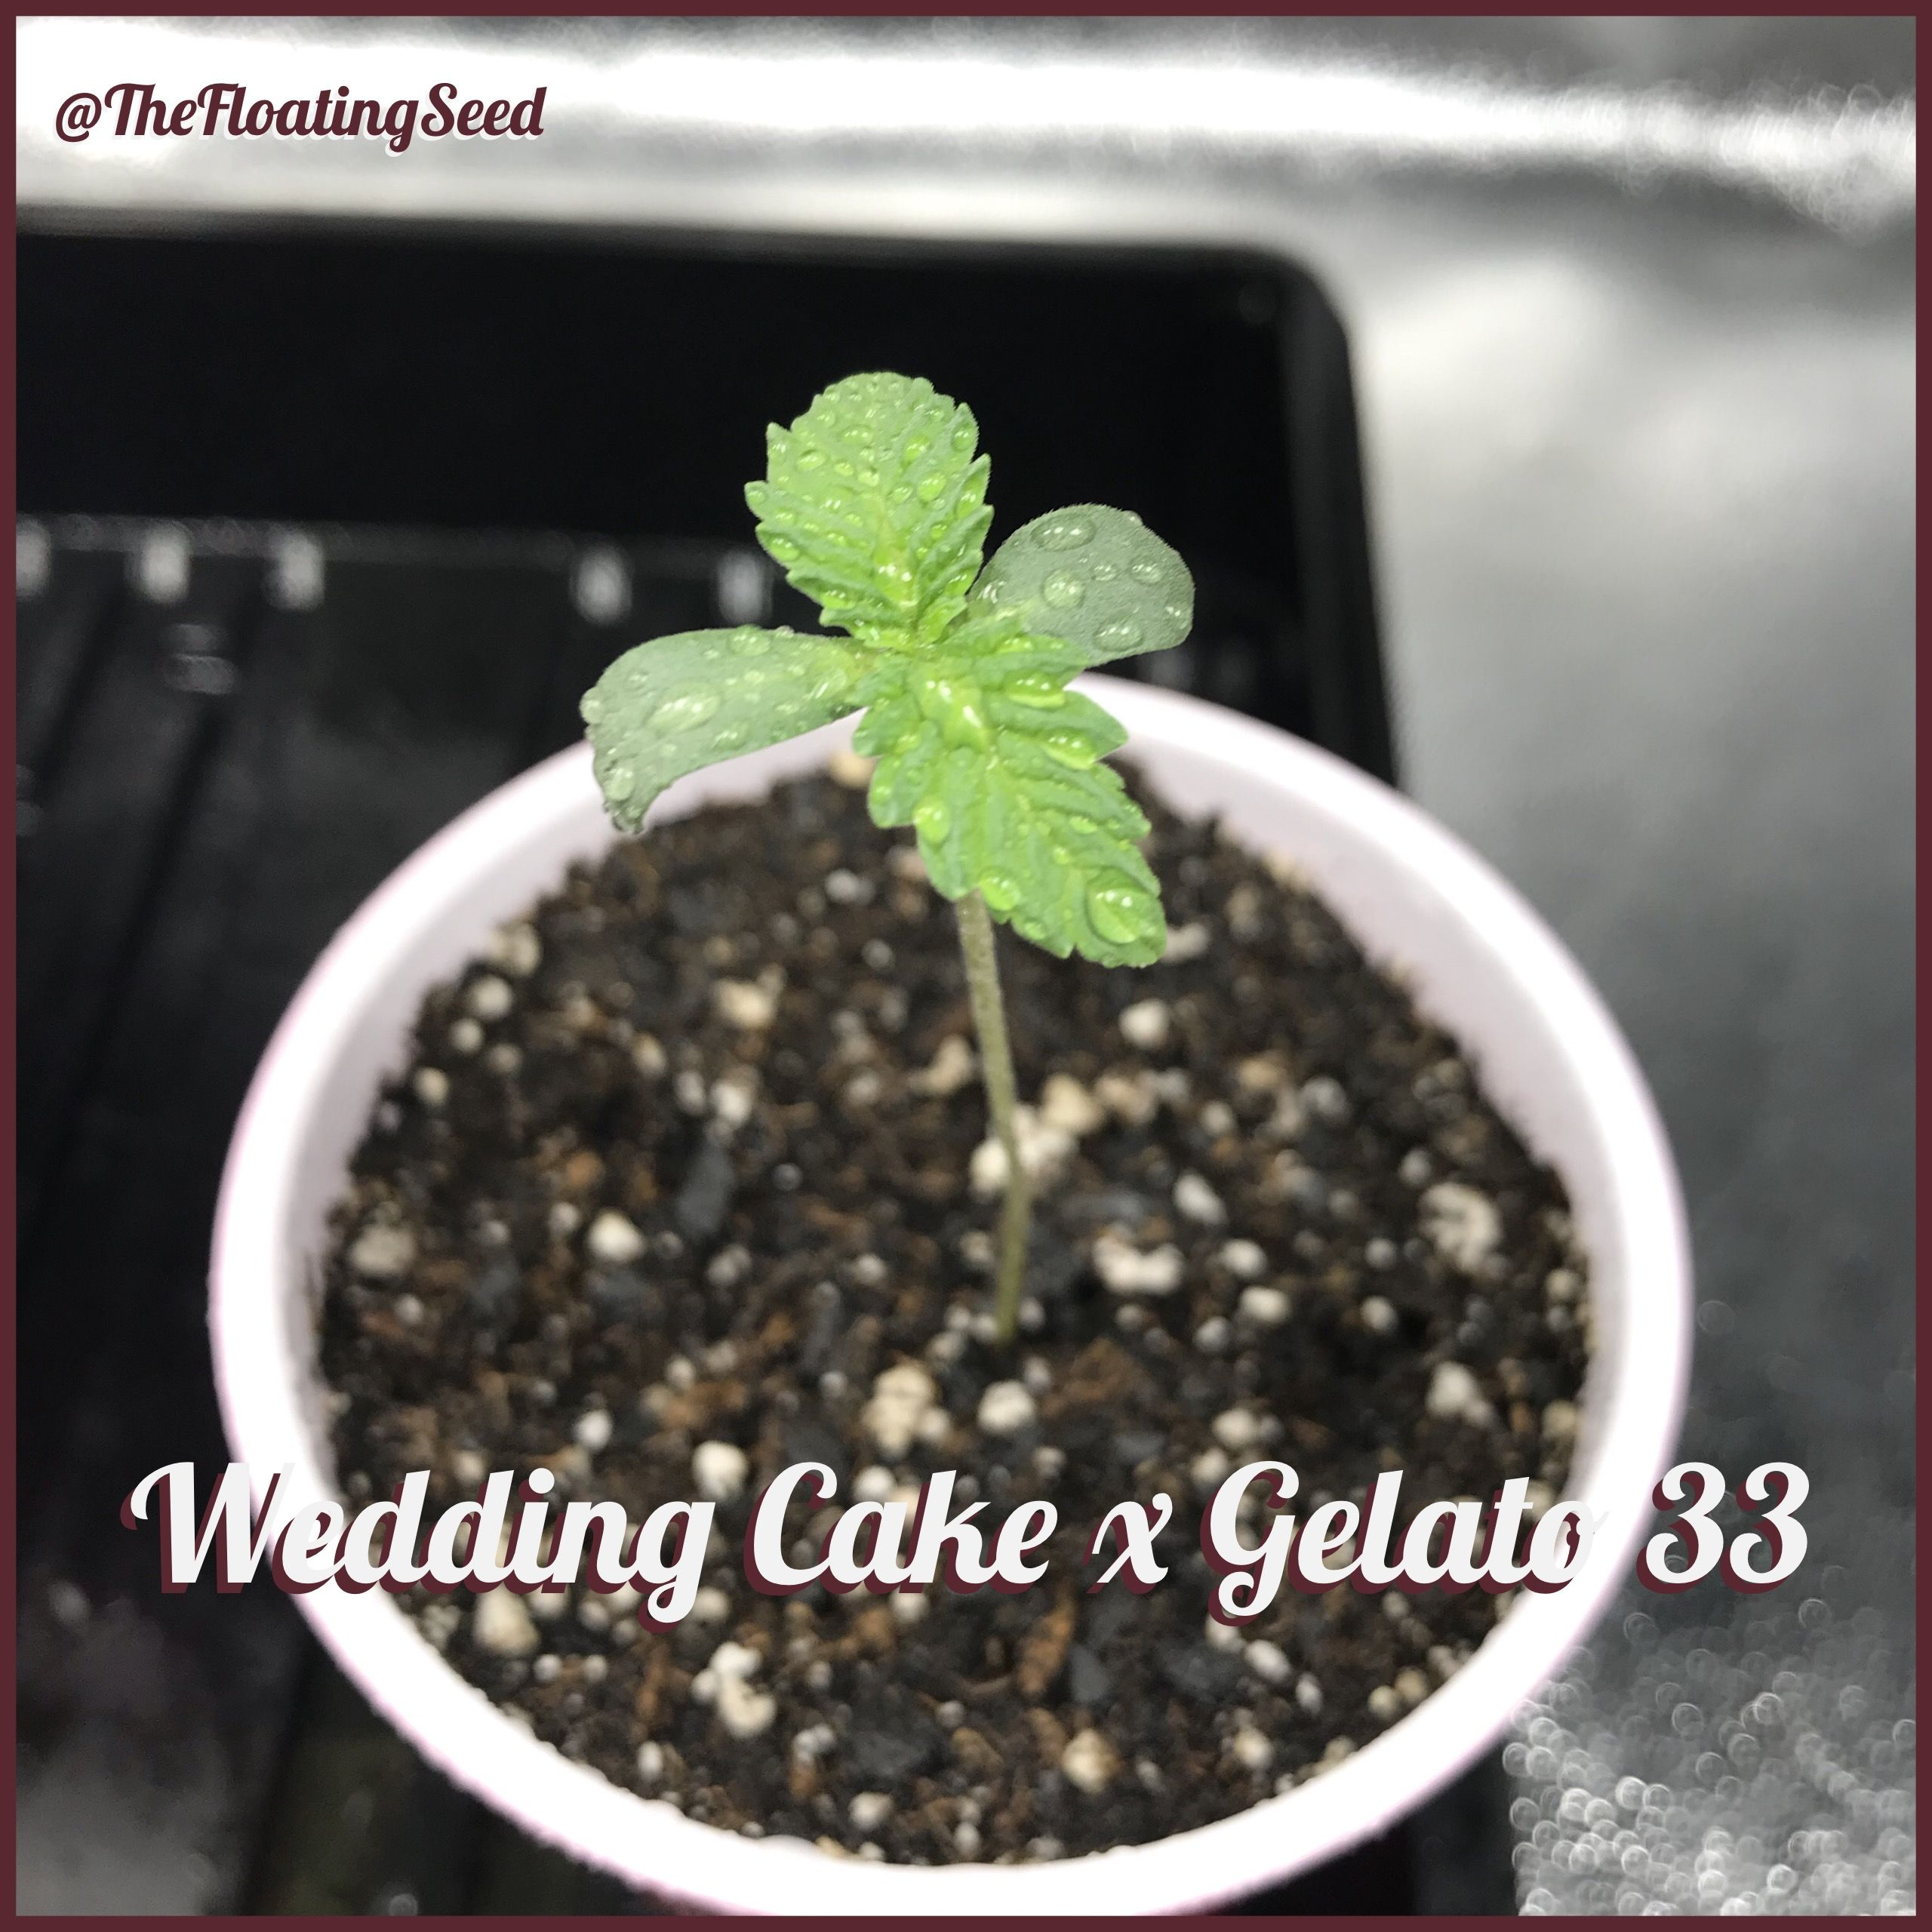 Pin By The Floating Seed On Wedding Cake X Gelato 33 Wedding Cakes